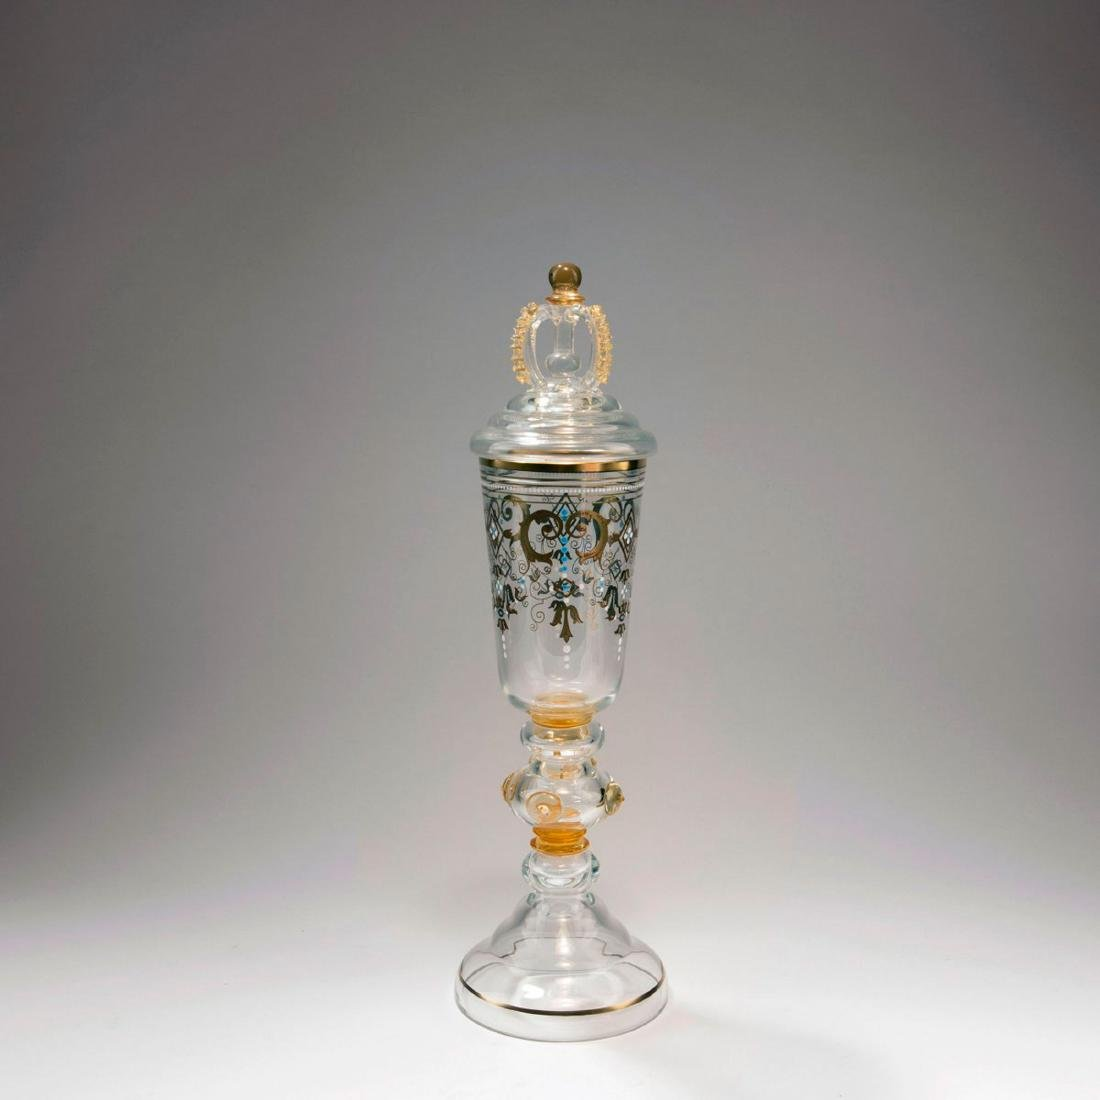 Covered goblet, c. 1885